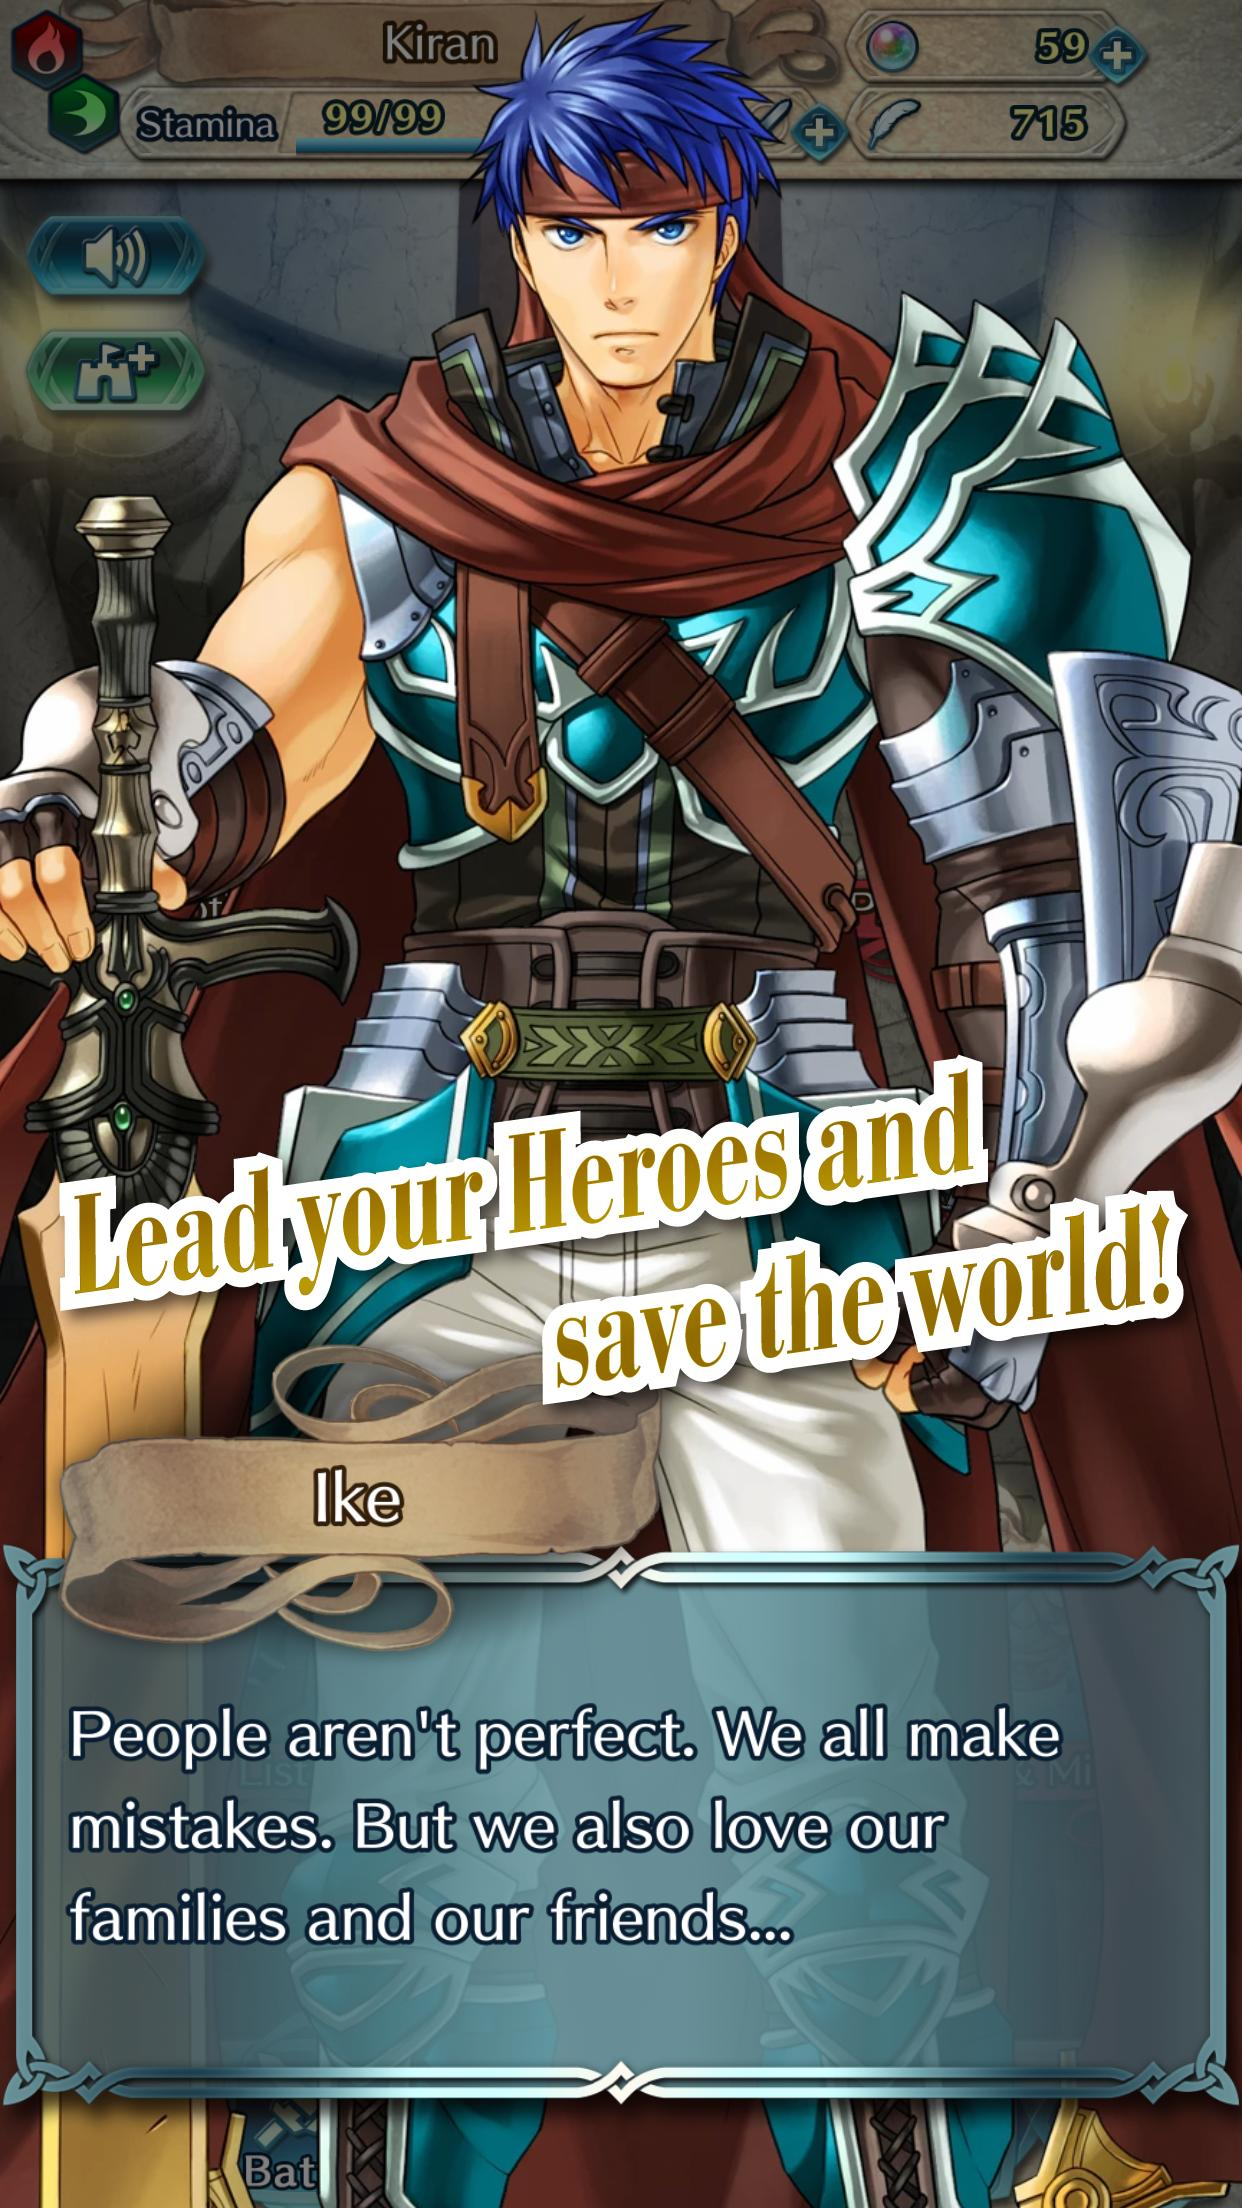 Fire Emblem Heroes for Android - APK Download